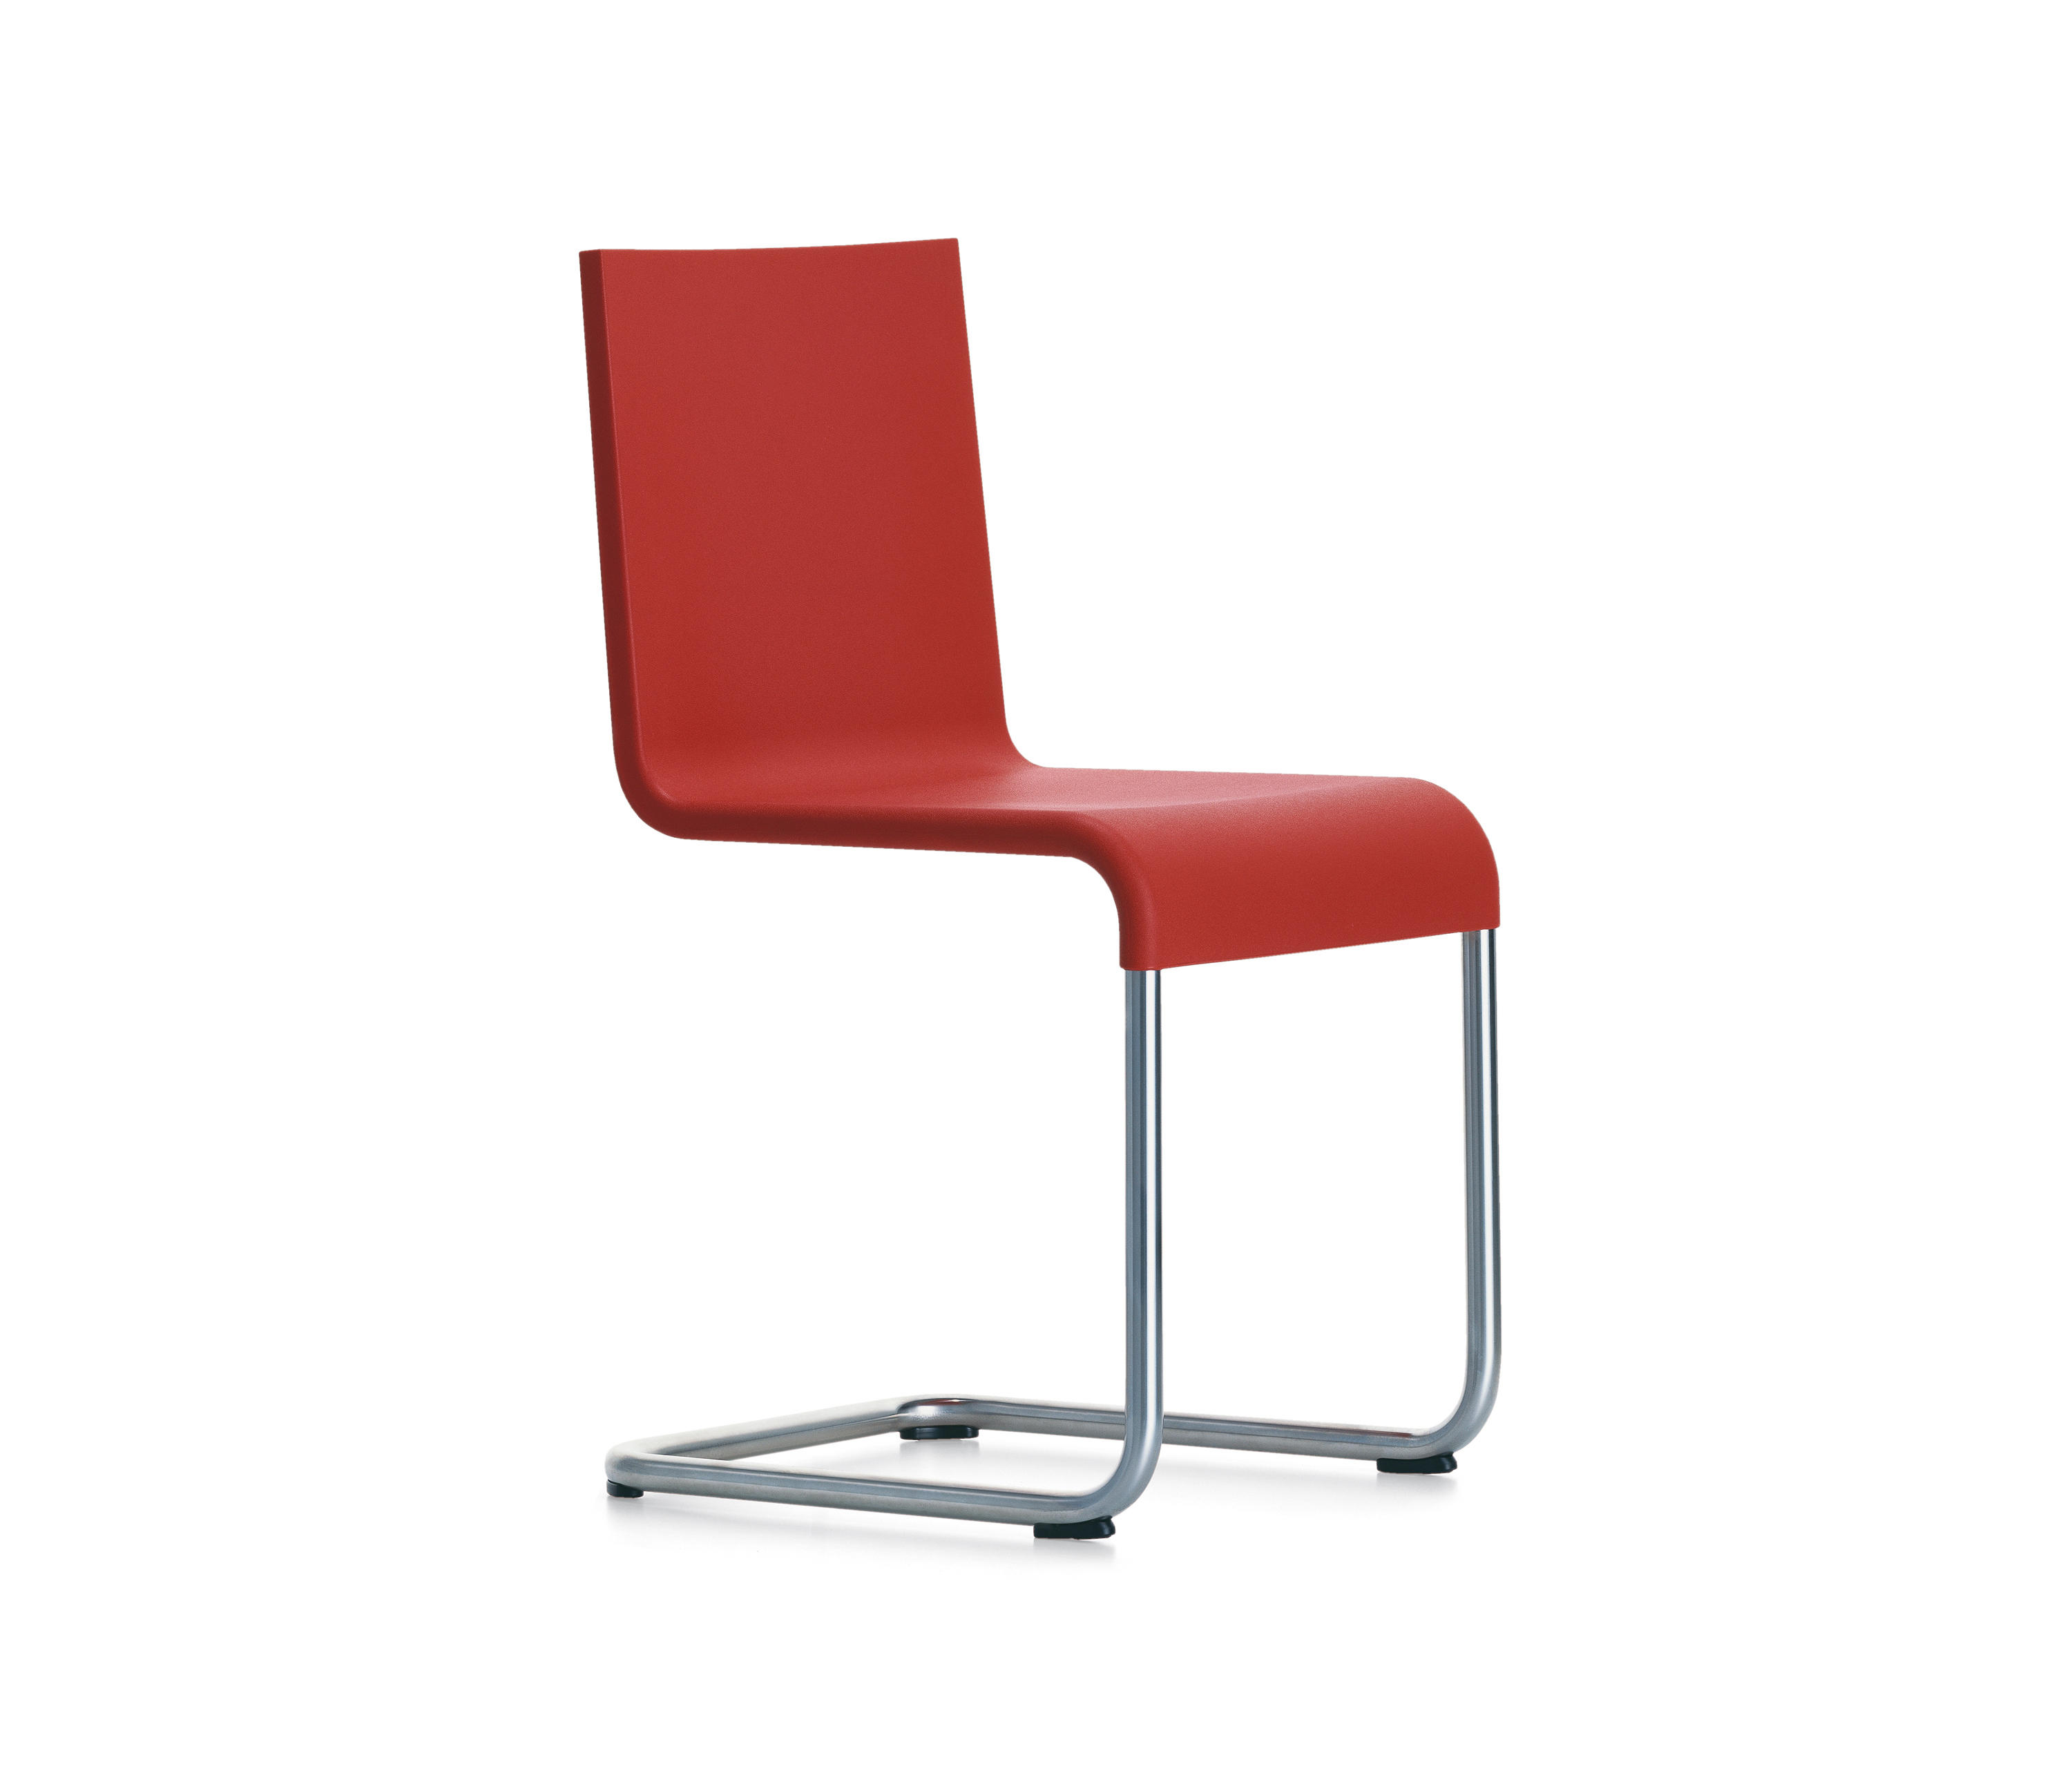 05 Multipurpose chairs from Vitra